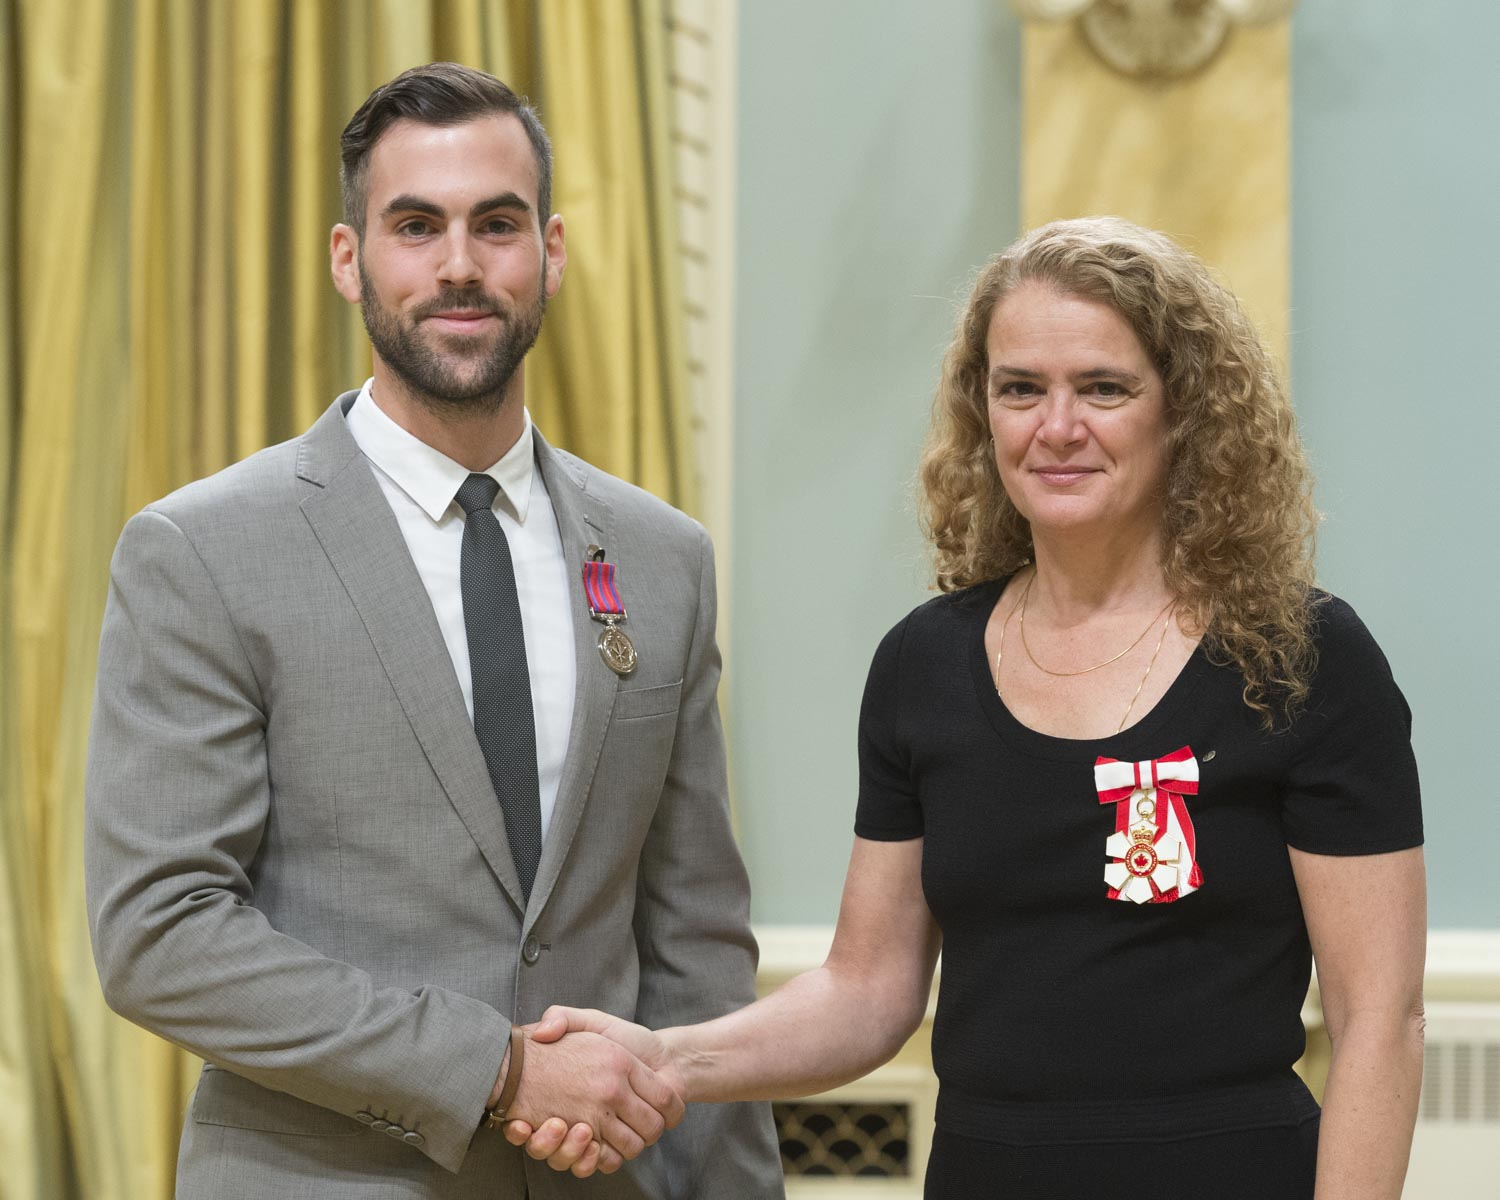 On October 7, 2014, Montréal police constables Steve Demers and Samuel Poirier-Payette (pictured left) put their lives at risk as they attempted to rescue a mother and her son from a burning house in Beaconsfield, Quebec. The officers first tried to reach one of the victims in the basement but were quickly driven back by the heat and heavy smoke. Hearing screams from the second victim on the main floor, the two constables struggled through the smoke until they reached the woman, but she refused to leave without her son, who was still in the basement. Constable Demers fell twice while attempting to drag the woman outside, but finally succeeded with the help of his colleague. Sadly, the victim's son did not survive. The decoration awarded to Constable Demers will be presented to him at a future ceremony.